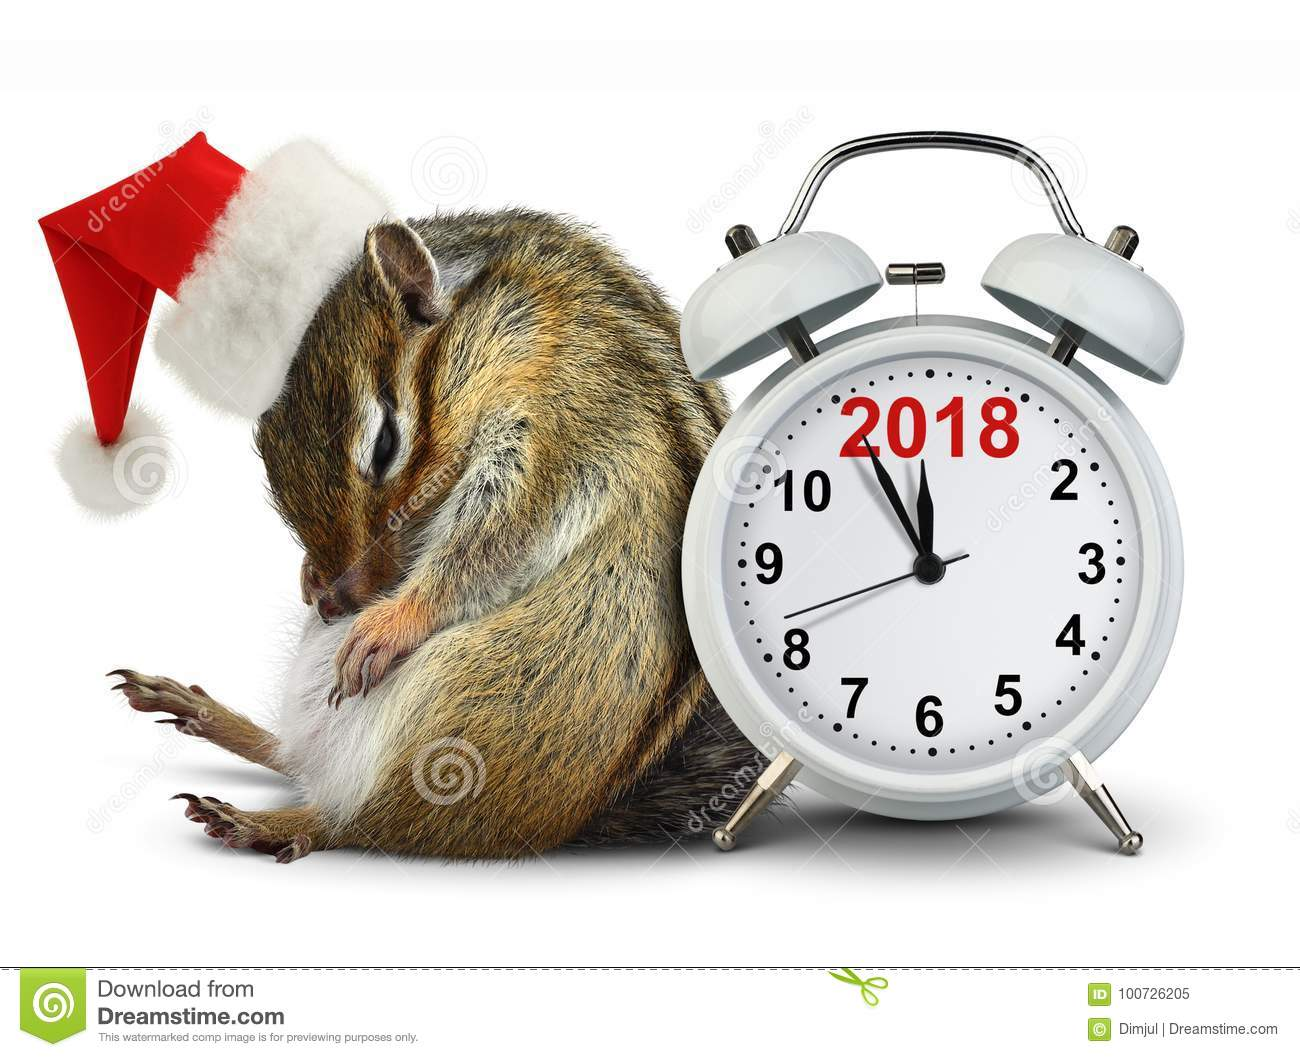 2018 New year concept, funny Chipmunk in red Santa hat with clock